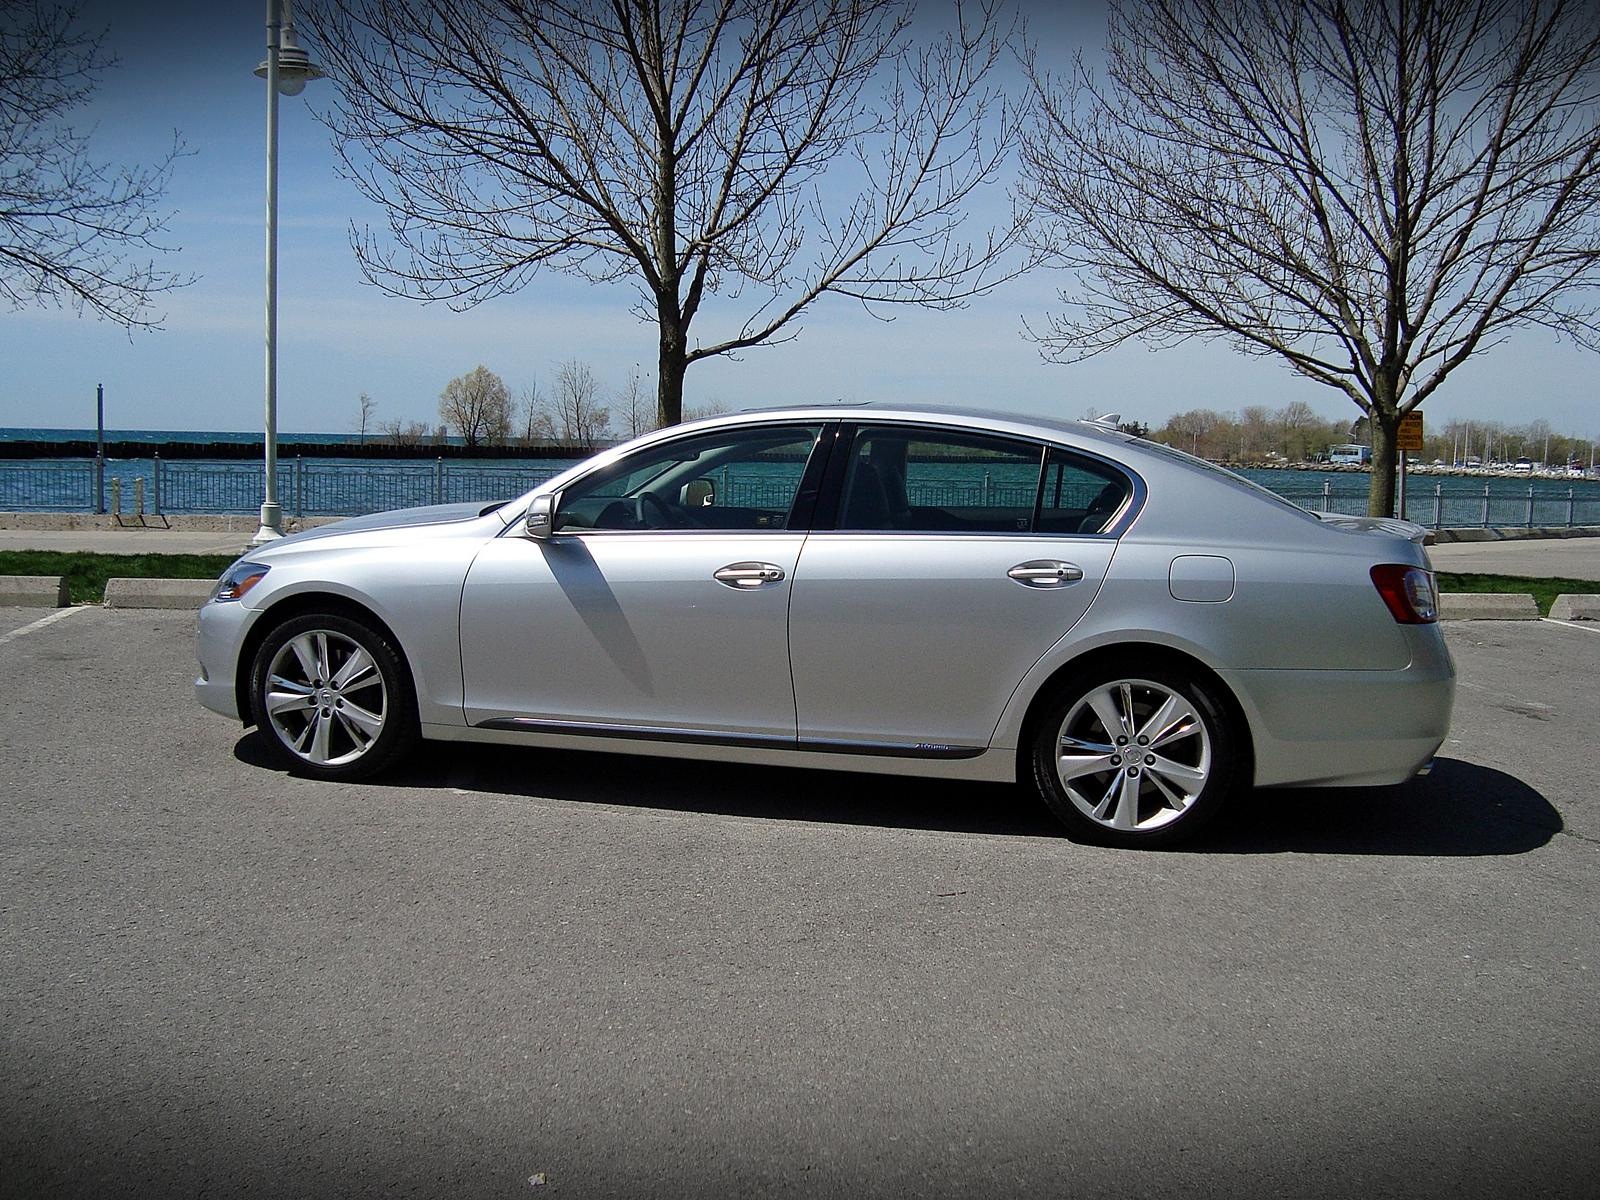 2011 lexus gs 450h information and photos zombiedrive. Black Bedroom Furniture Sets. Home Design Ideas